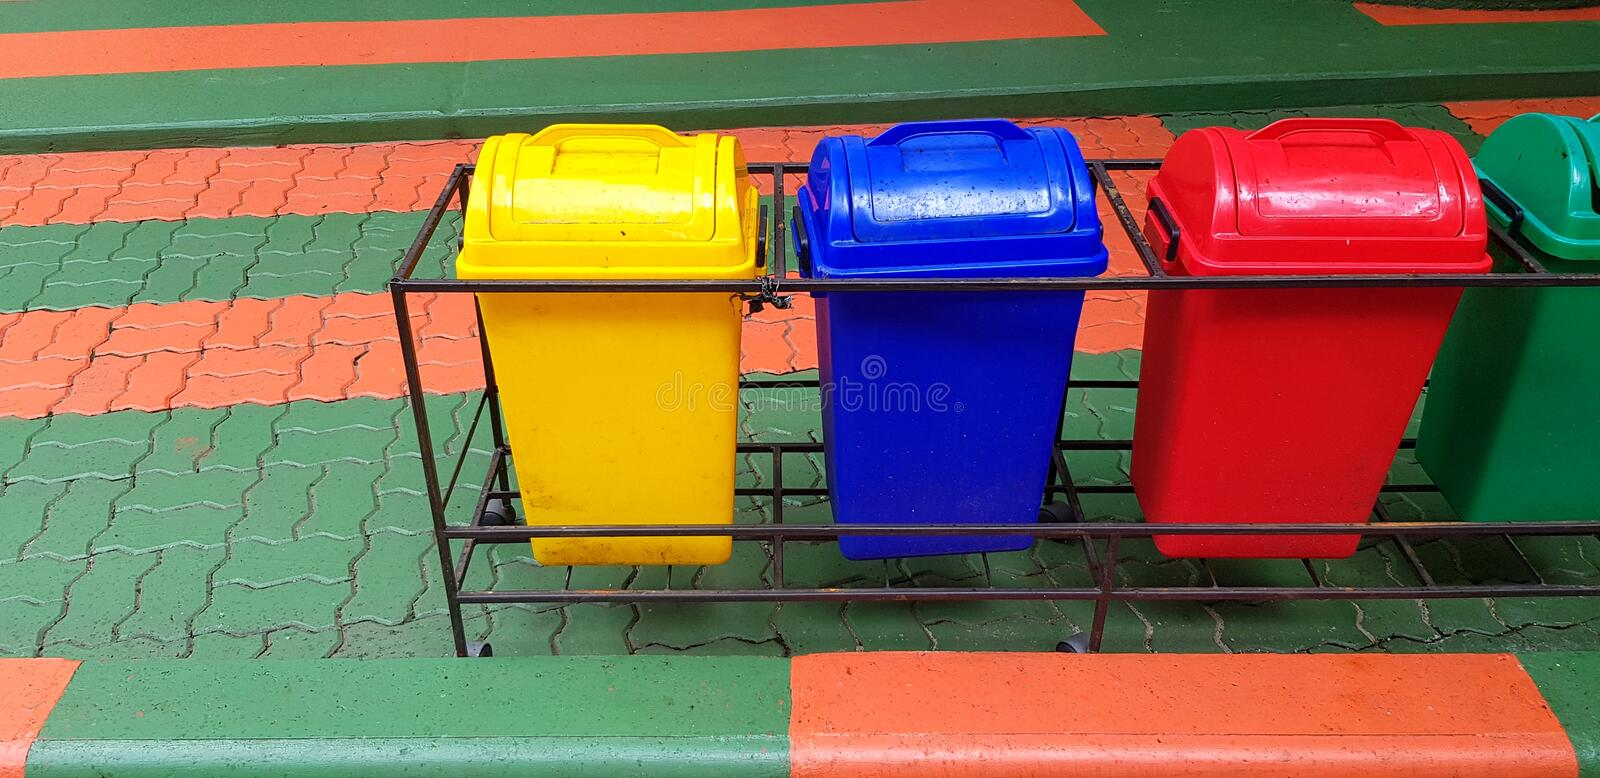 Four recycle bin, trash or garbage for dumping waste on footpath with copy space. Cleaning city, Green world, Nature, Reduce material concept royalty free stock photos